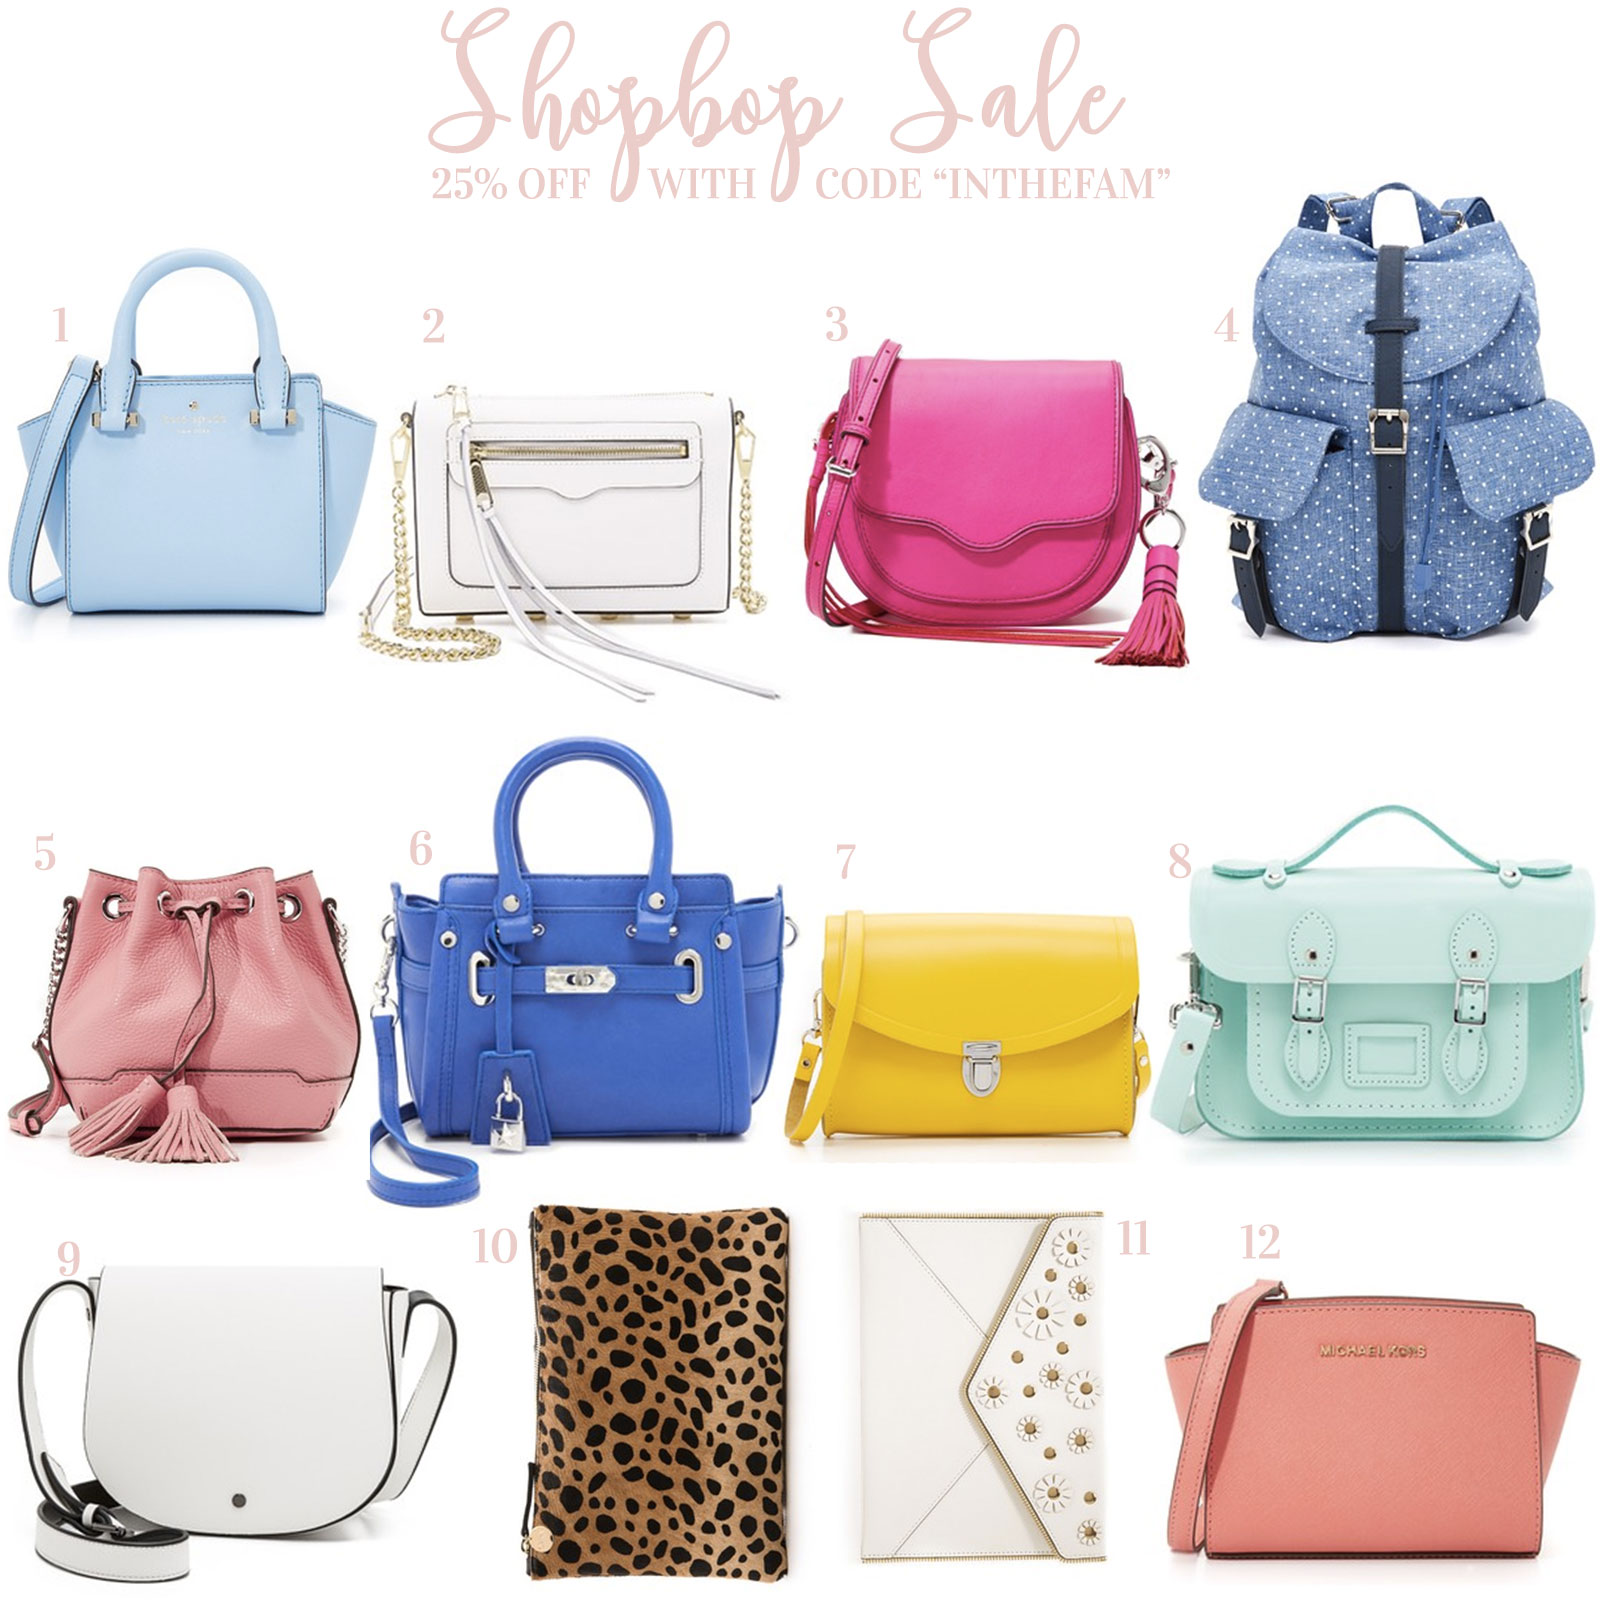 Shopbop Friends and Family Sale- Spring Handbags 2016!